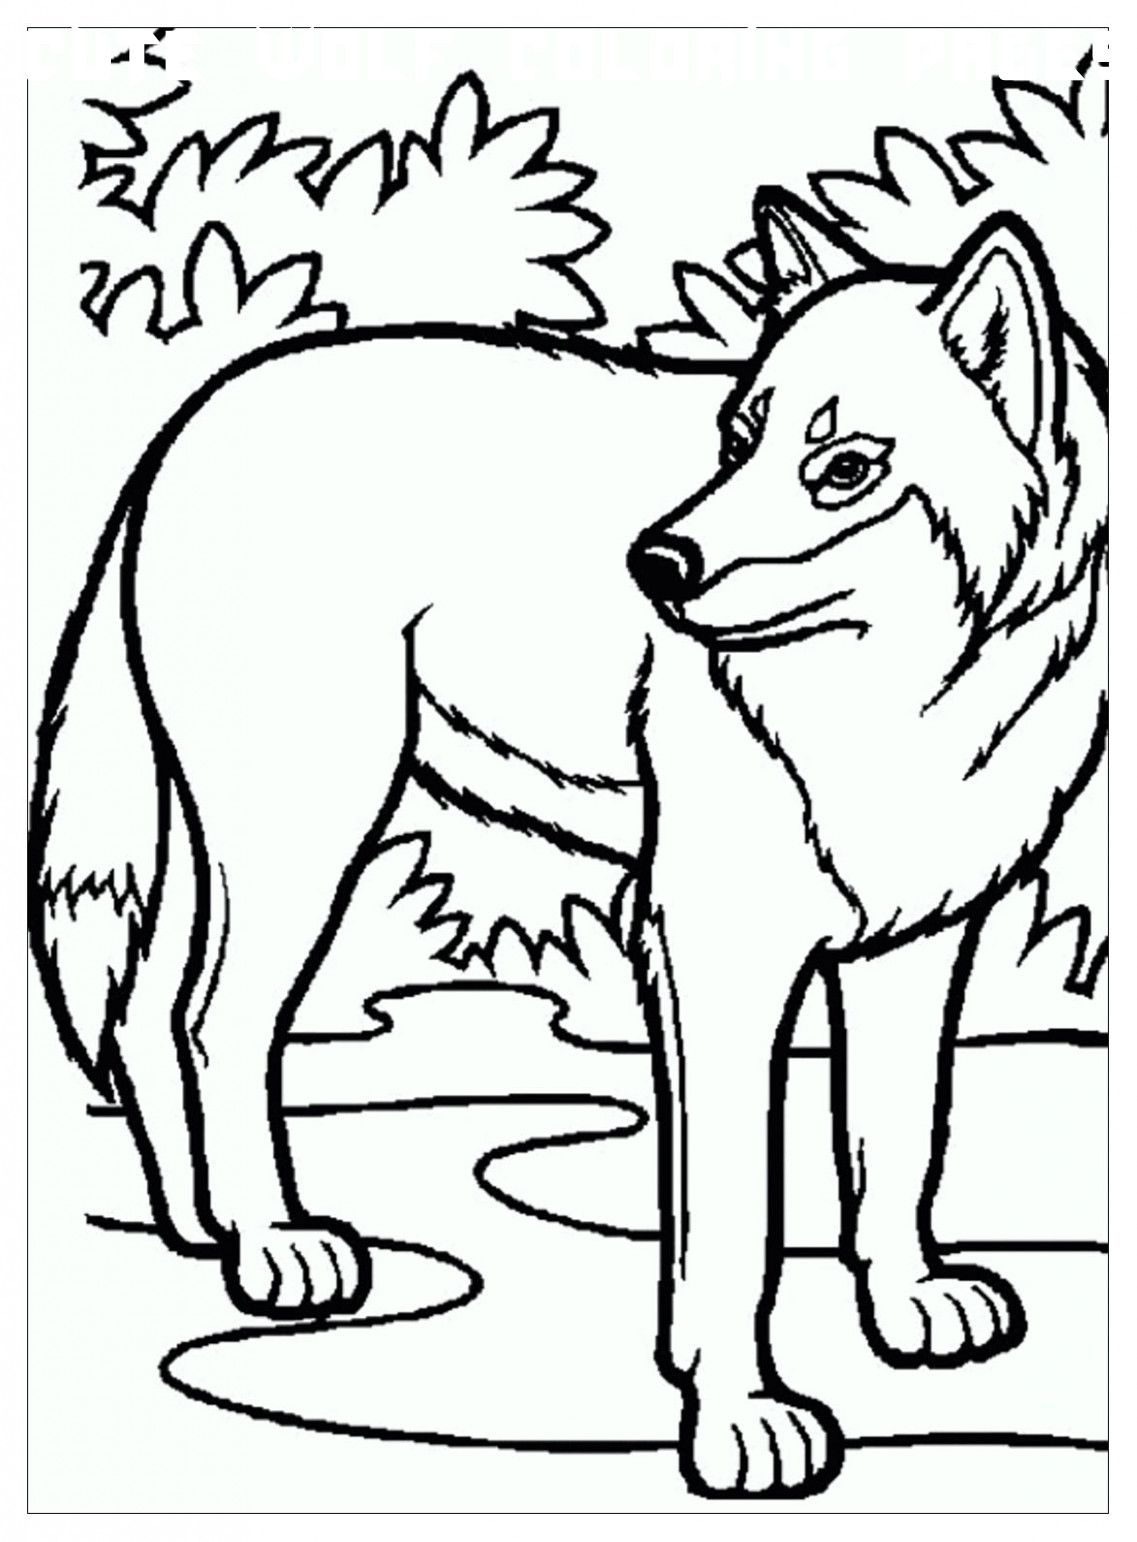 6 Cute Wolf Coloring Pages In 2020 Wolf Colors Animal Coloring Pages Horse Coloring Pages